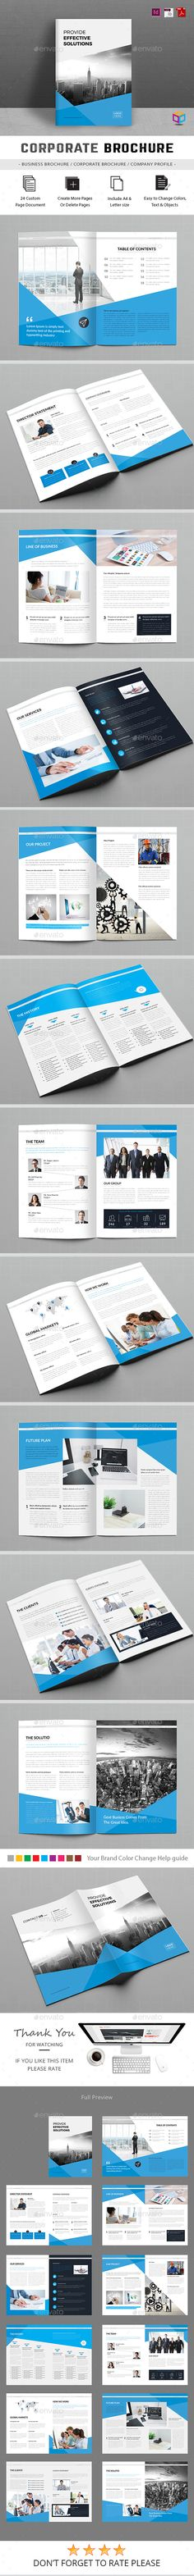 Brochure — InDesign Template #project #8.27x11.69 • Download ➝ https://graphicriver.net/item/brochure/18018173?ref=pxcr